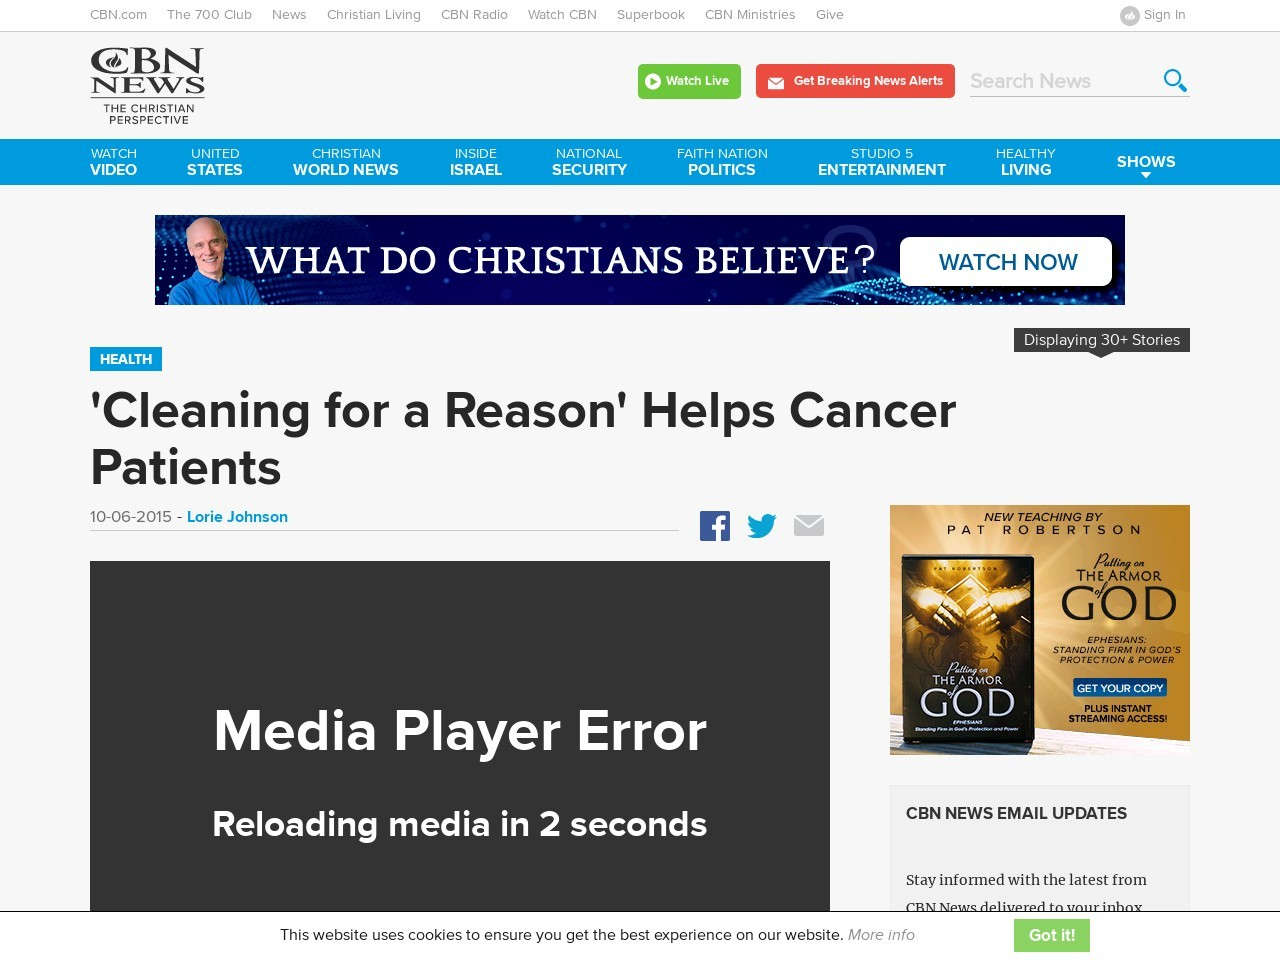 'Cleaning for a Reason' Helps Cancer Patients